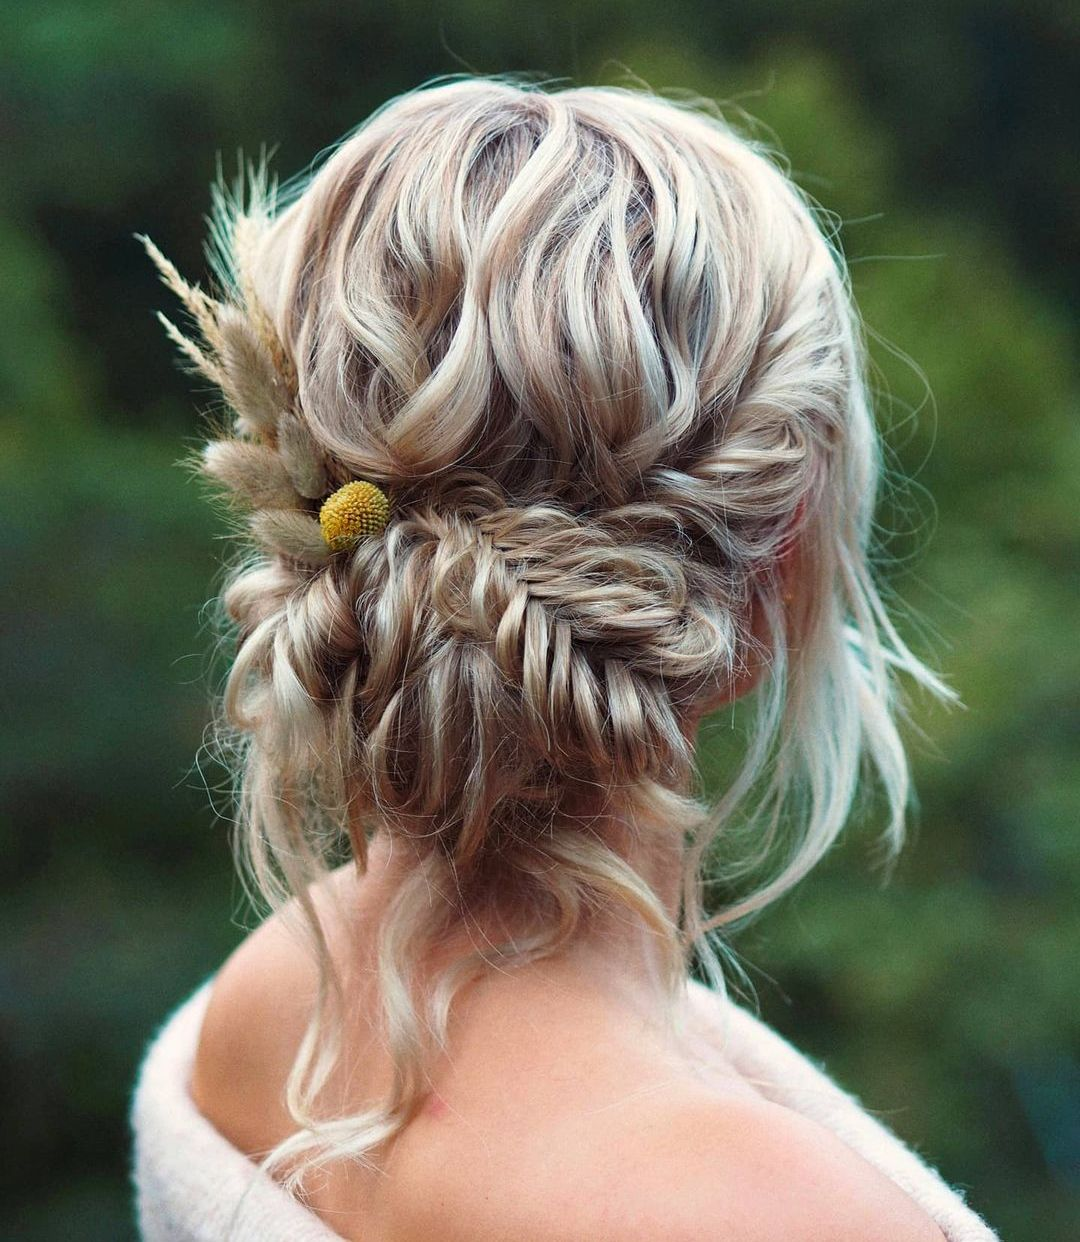 Cute Braided Updo with Flowers for Long Hair